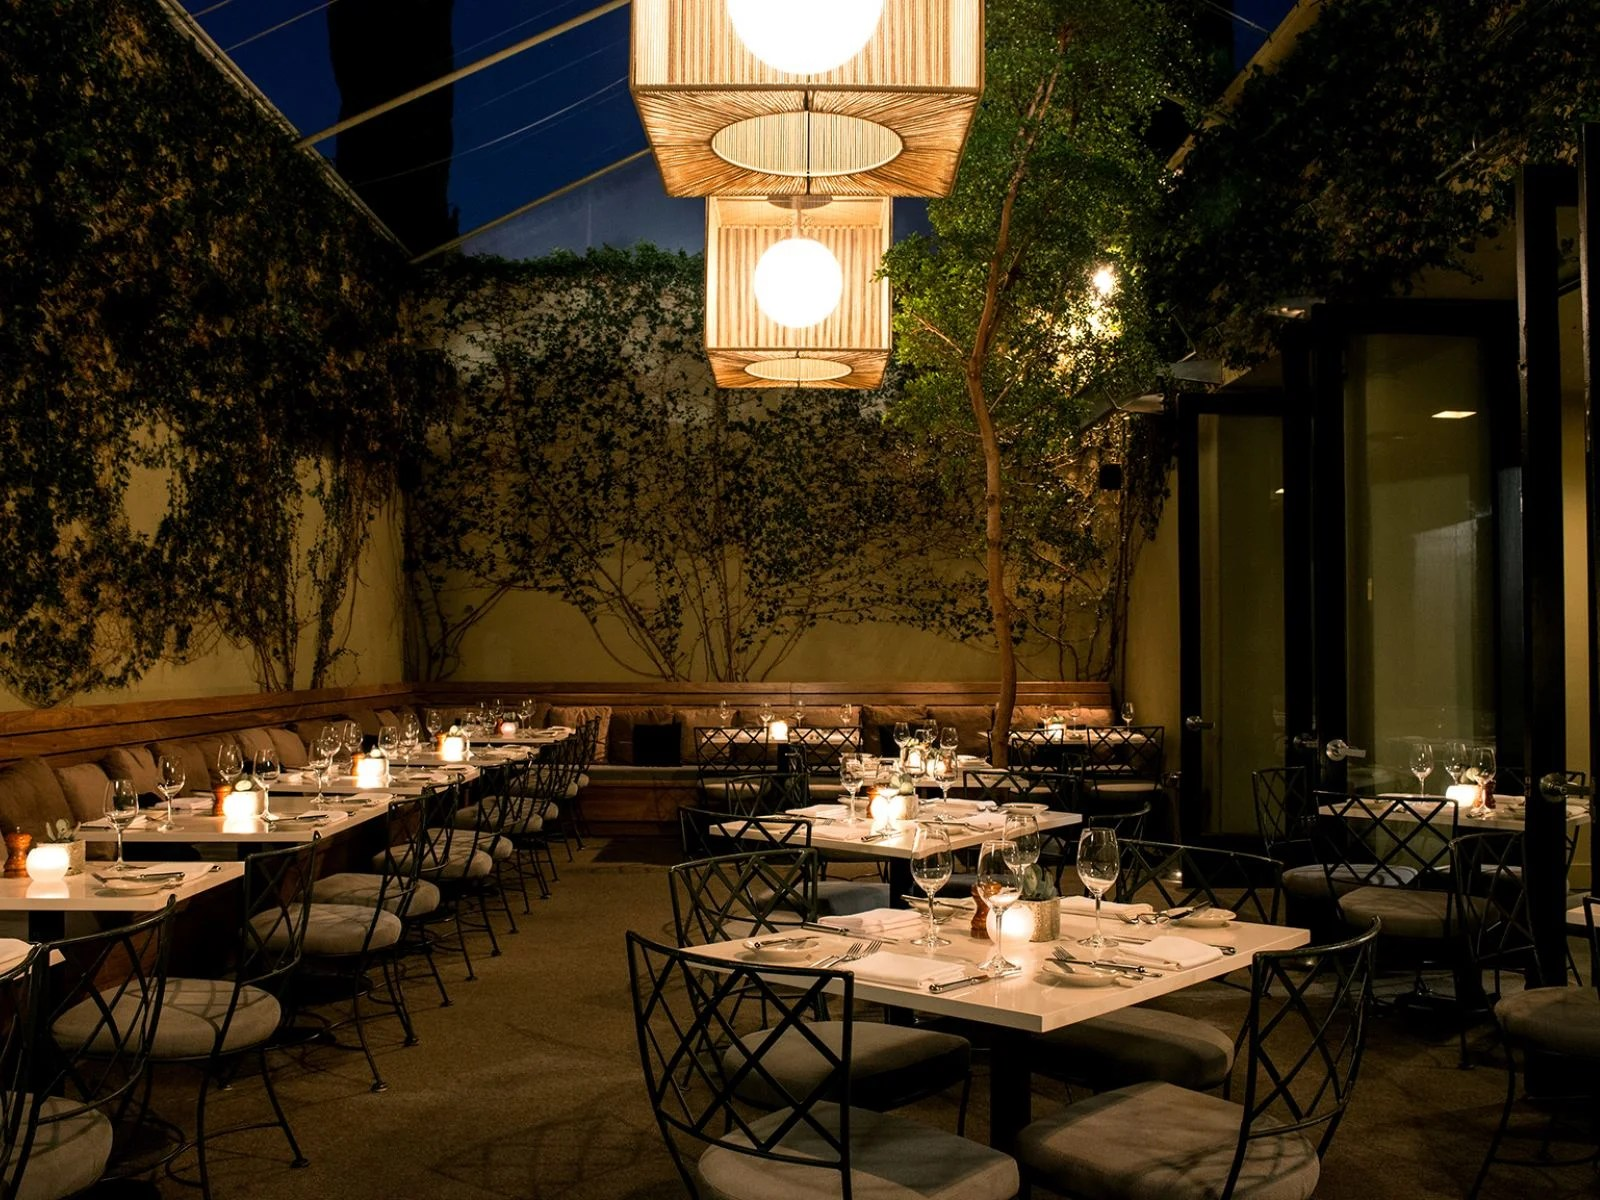 Al Fresco The Guide To Al Fresco Dining In Los Angeles Discover Los Angeles